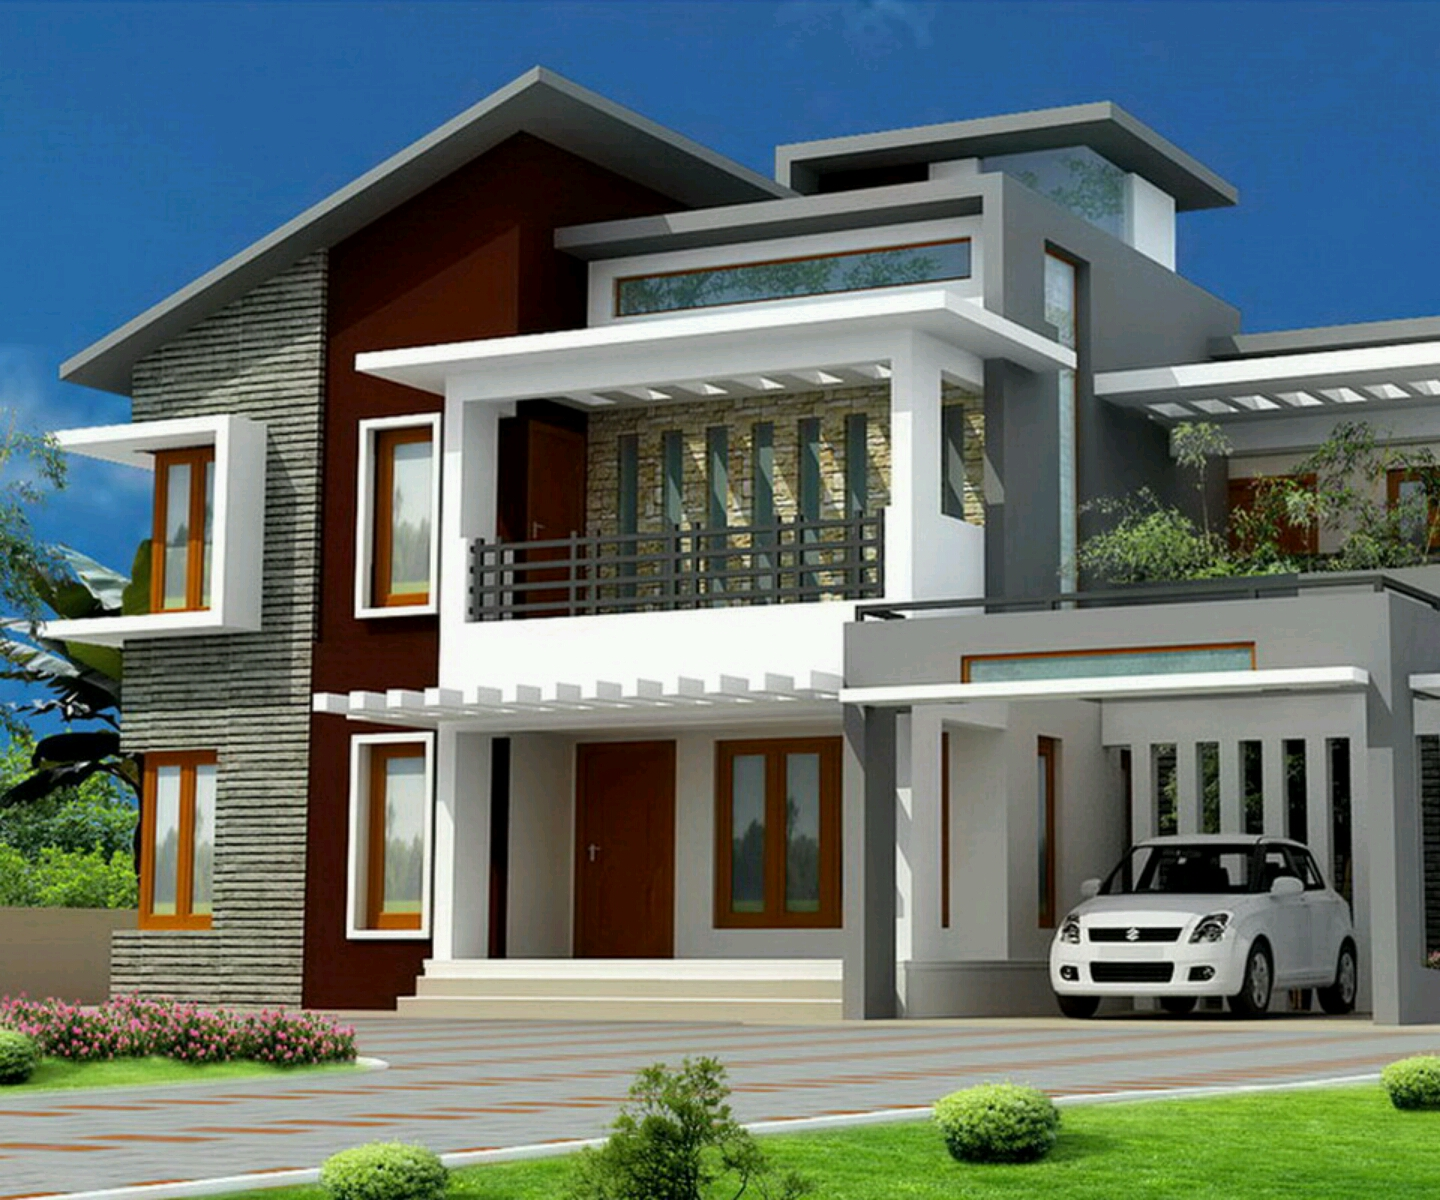 New home designs latest.: Modern bungalows exterior ...